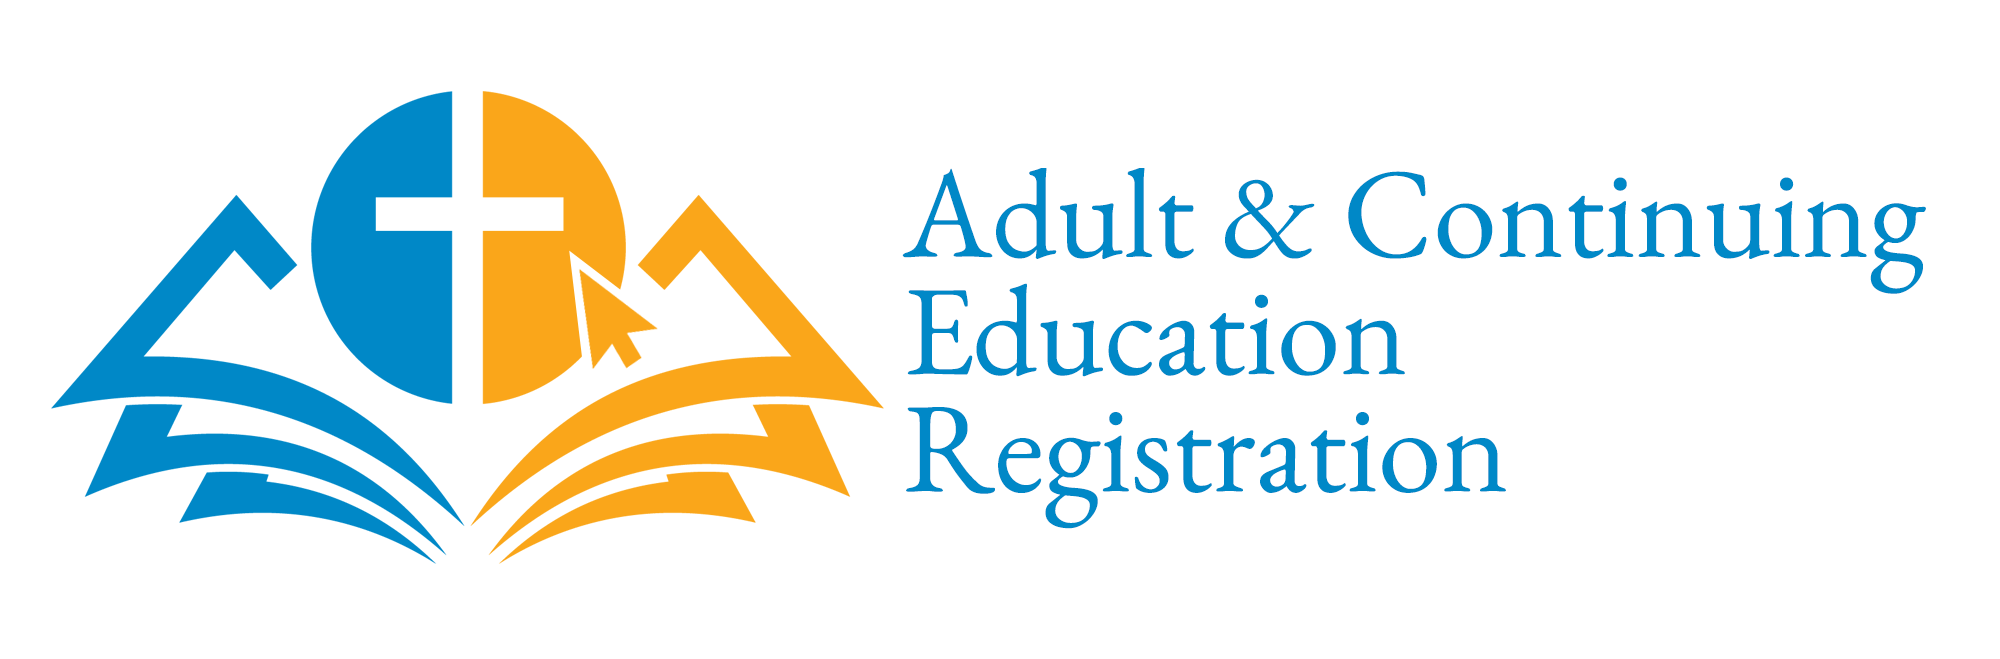 Adult and Continuing Education Registration